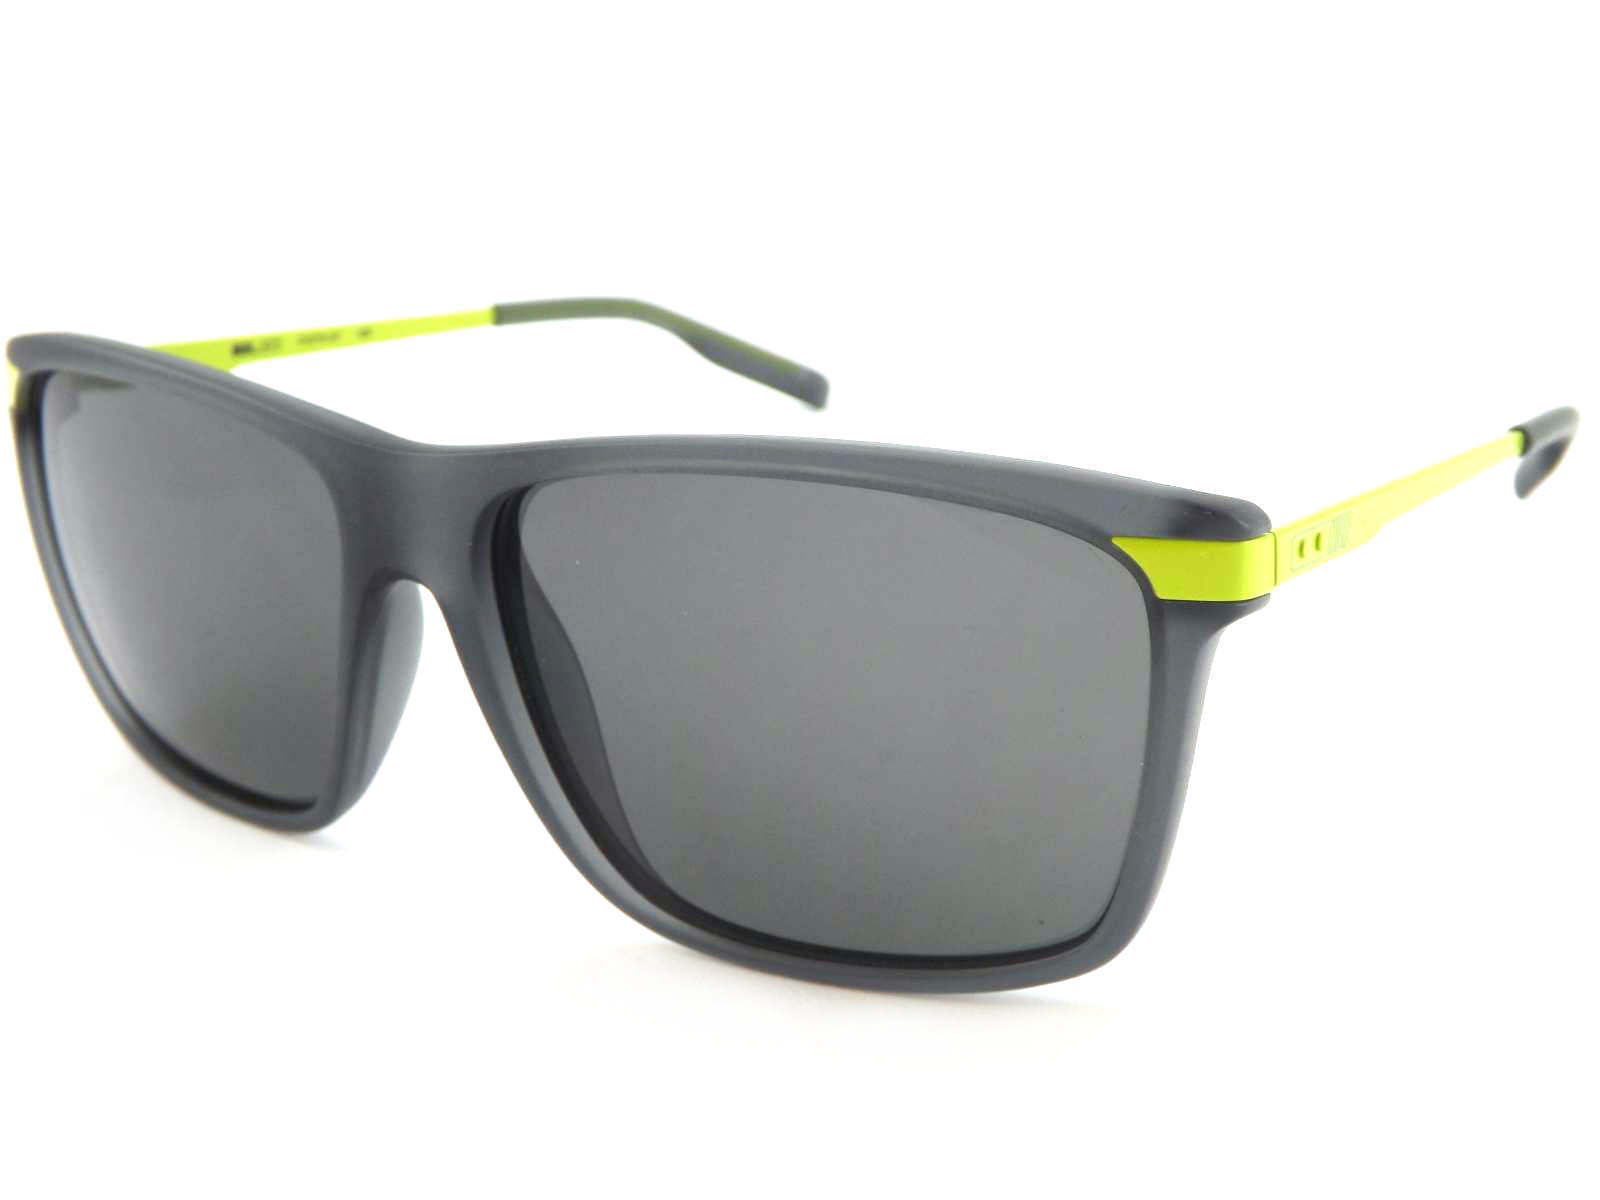 f04d3b285f NIKE MDL 252 sunglasses Matte Dark Grey with Volt Yellow Arms   Grey Lens  017